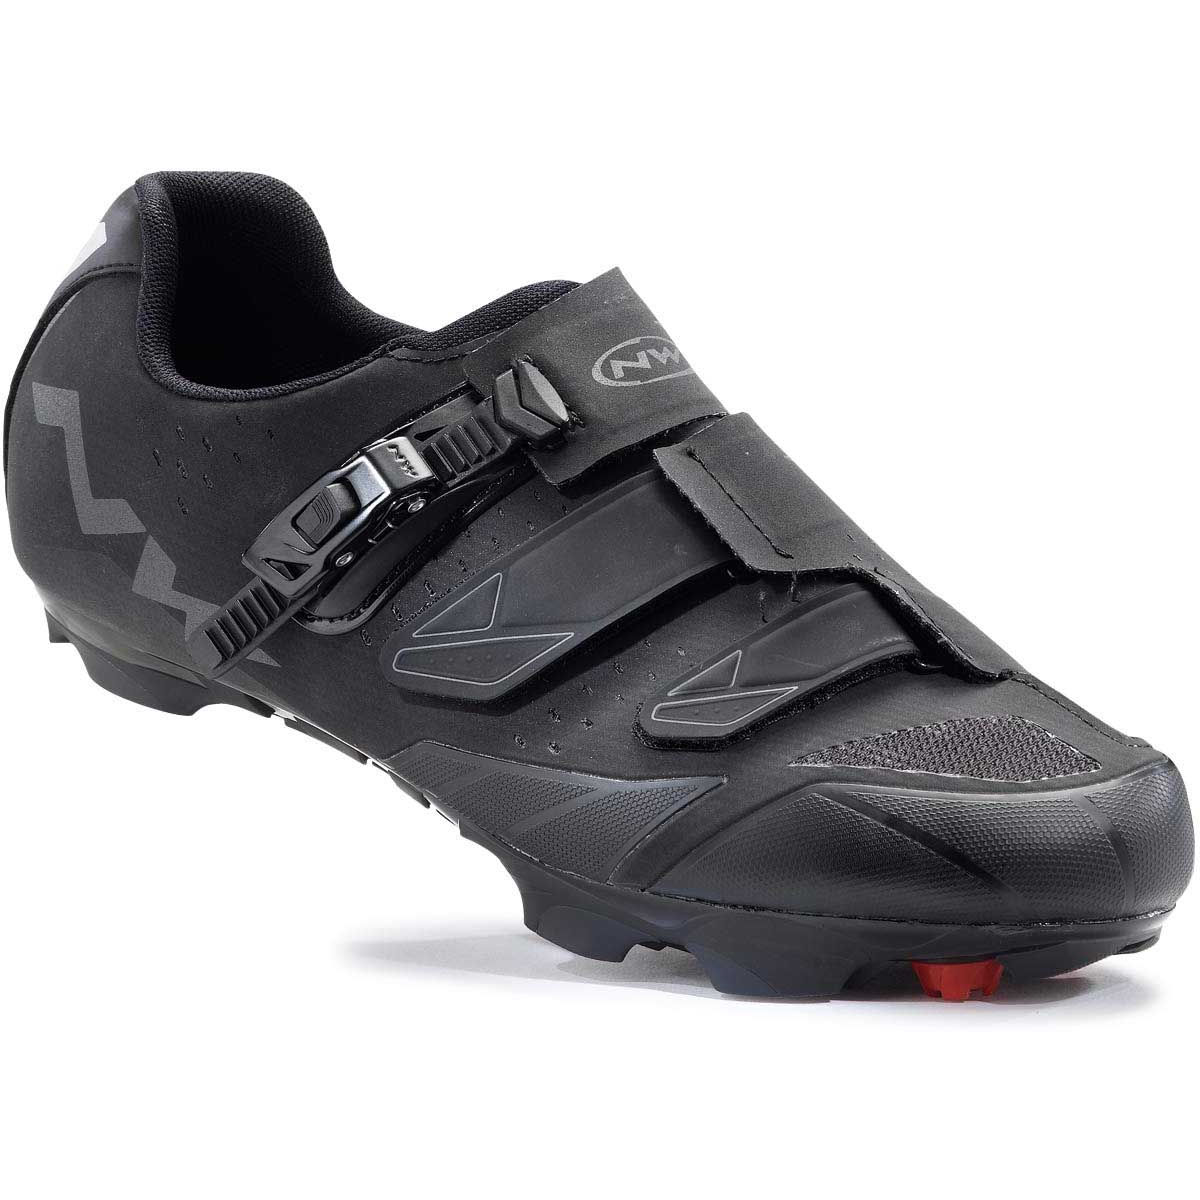 Northwave Scream SRS MTB Shoe